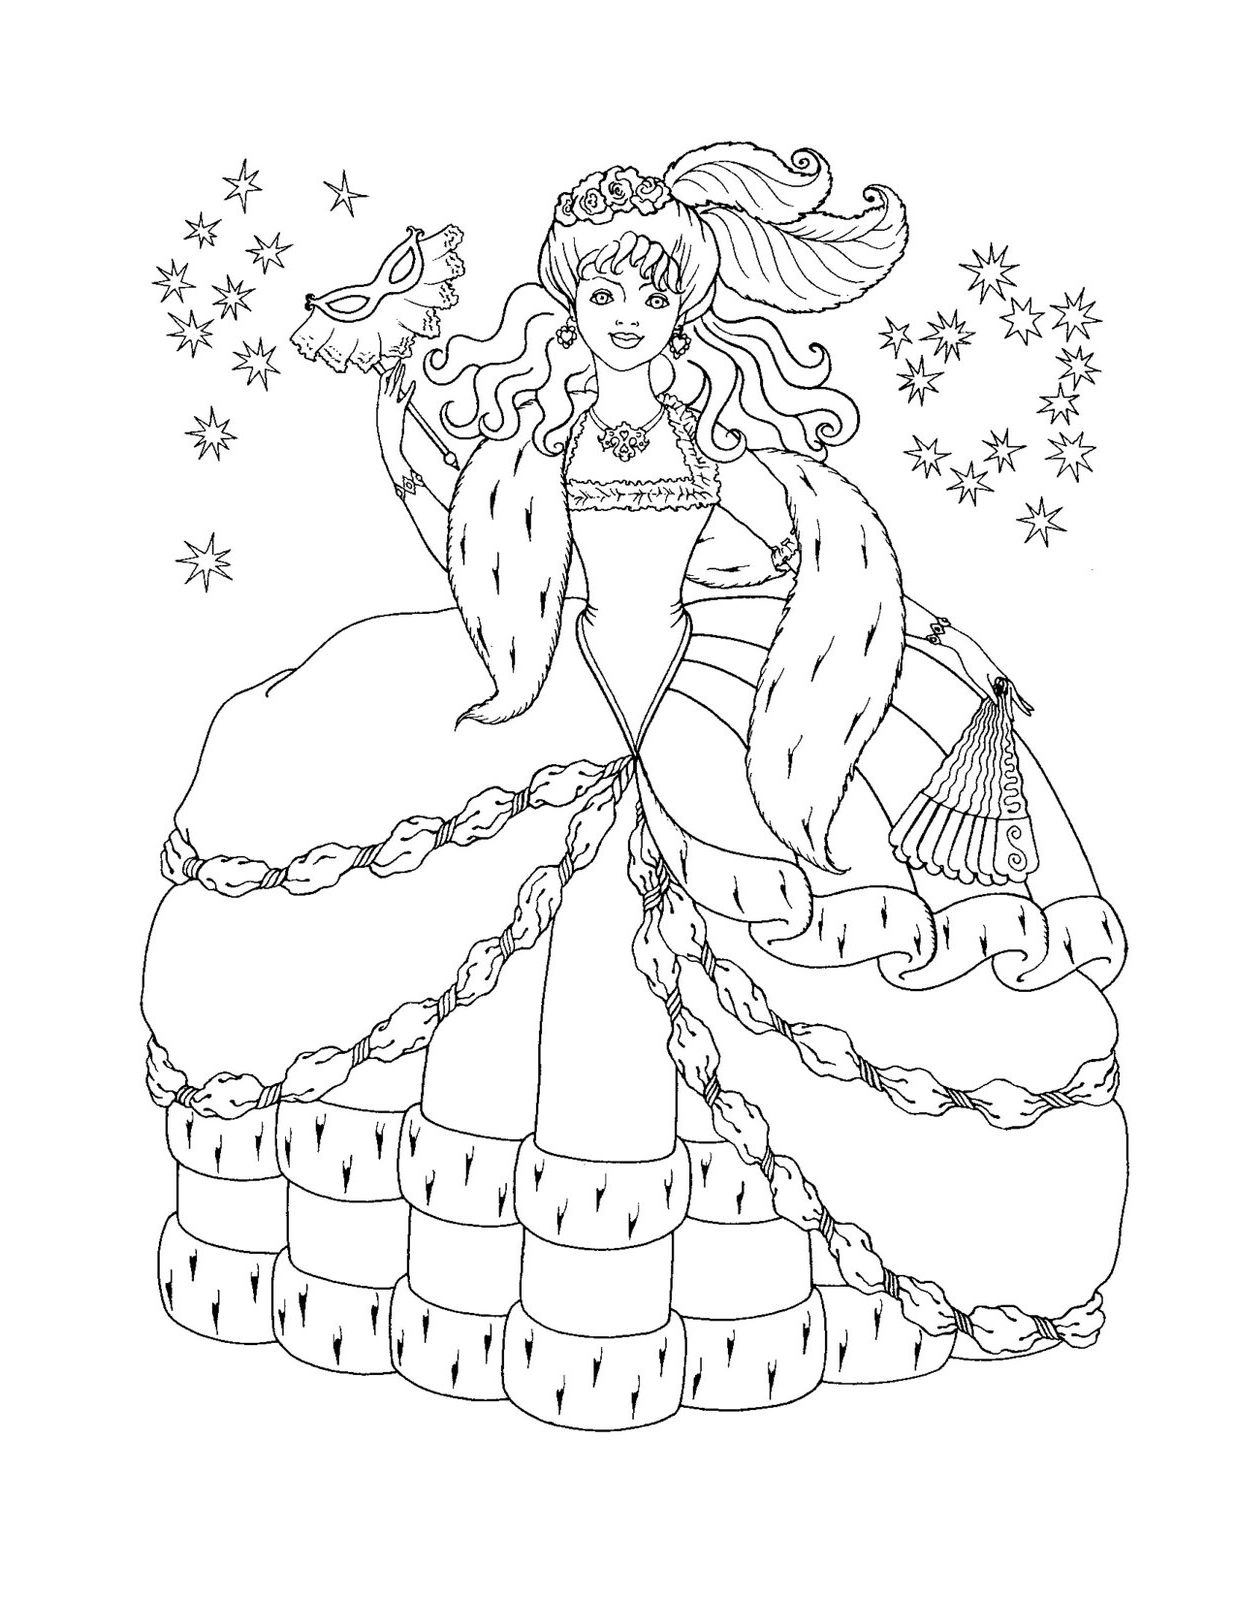 Masquerade Barbie   Adult Coloring Pages   Pinterest   Masquerades ...